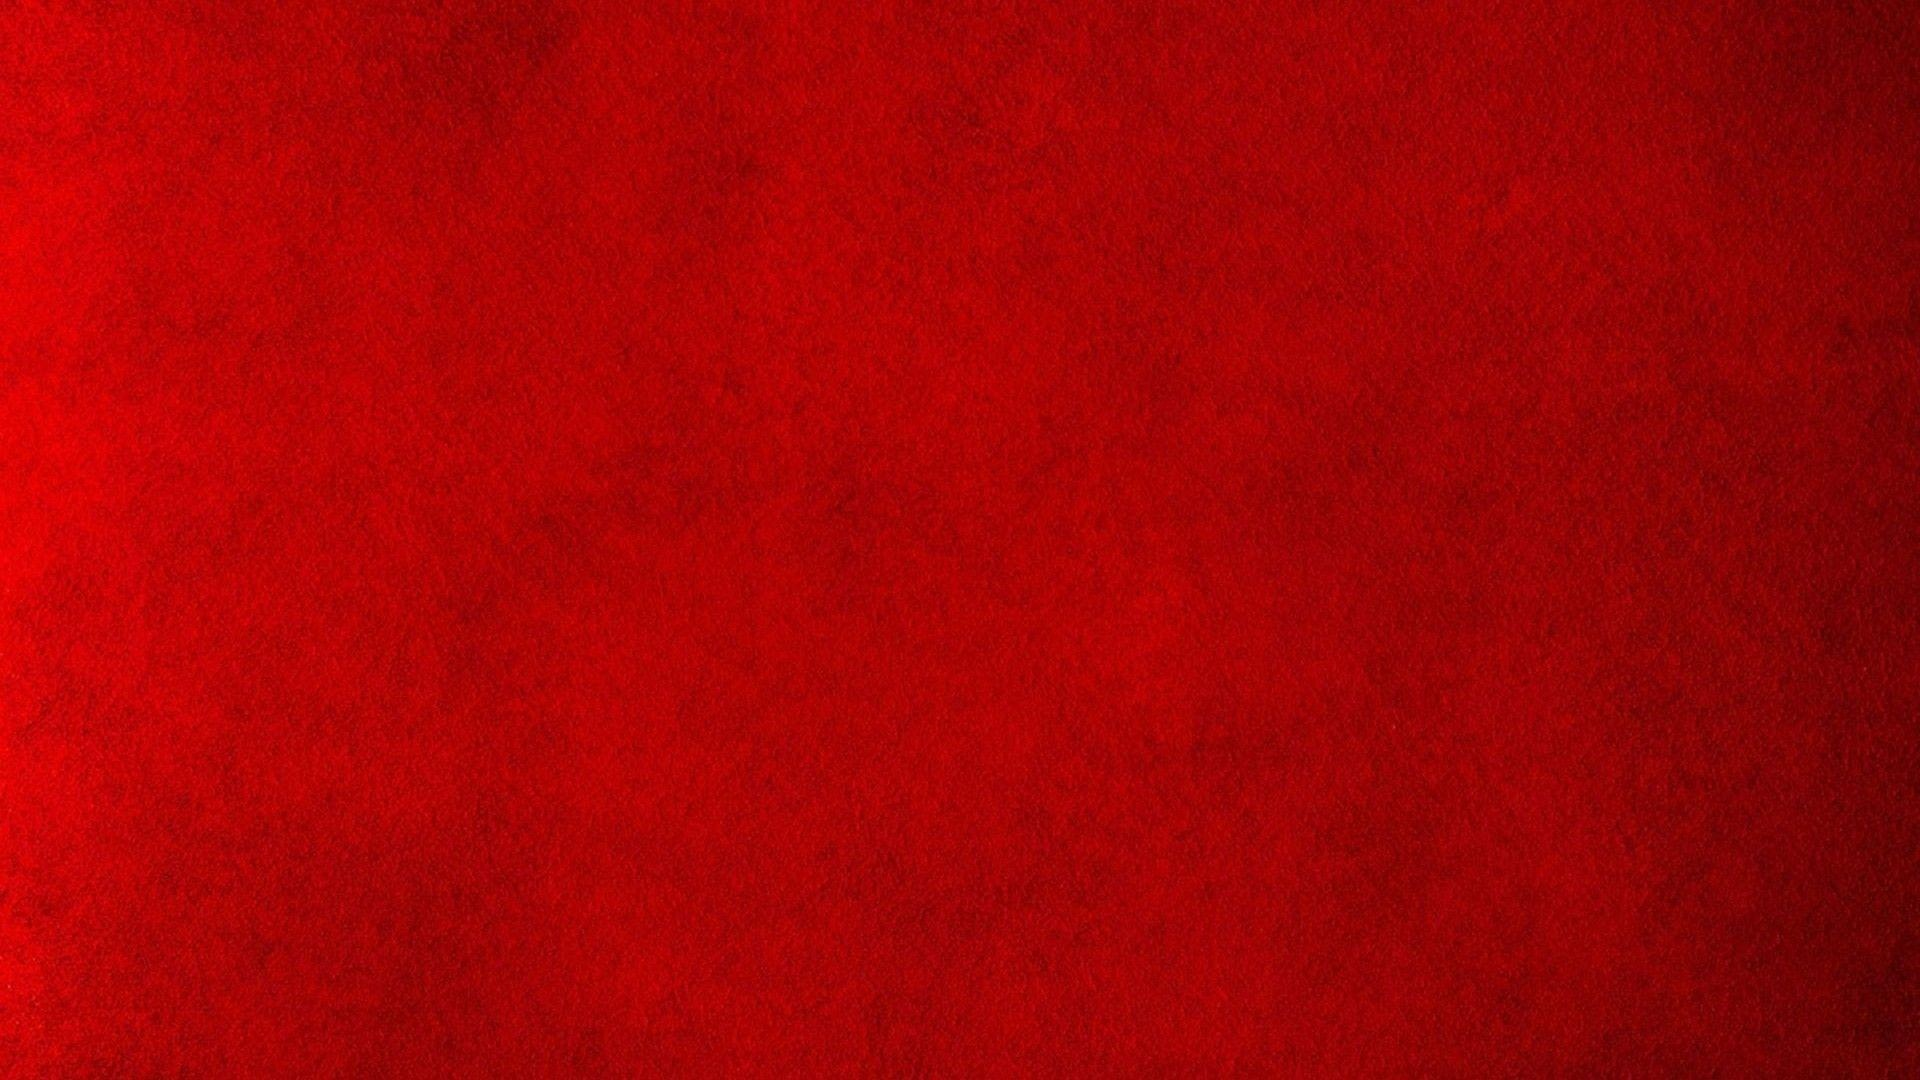 Solid Red PC Wallpaper